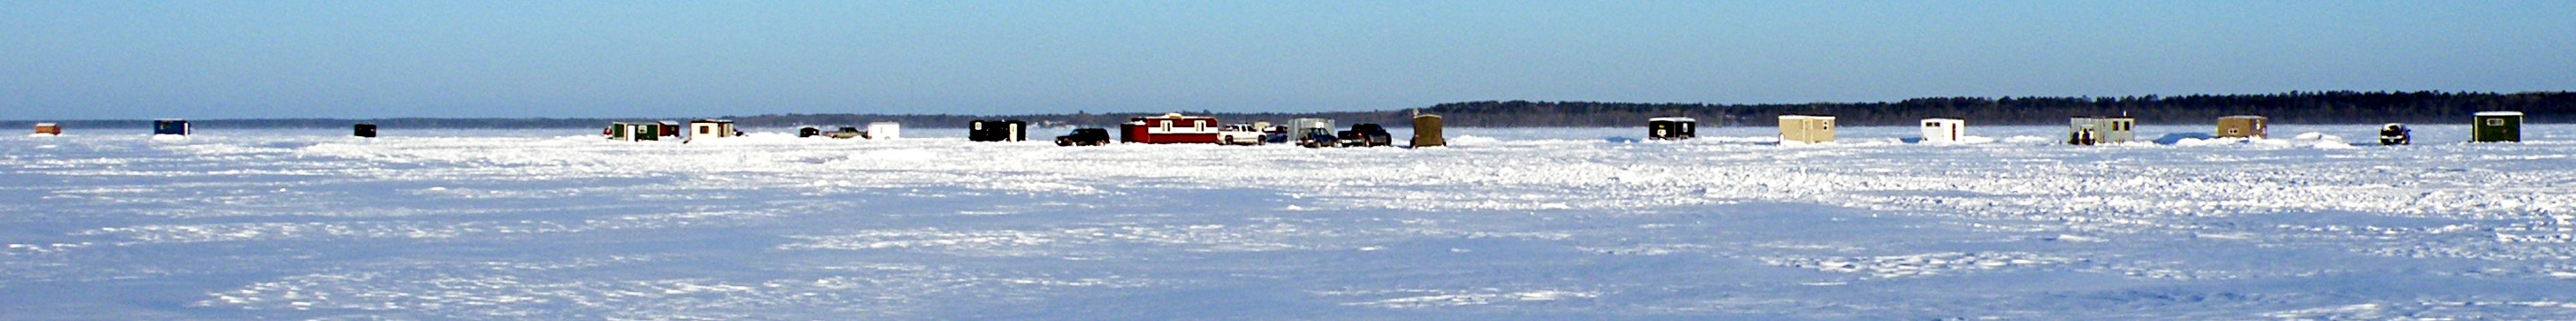 Ice fishing houses on Lake Bemidji in Minnesota (2008) Photo by Matthew Stinar - CC BY-2.0